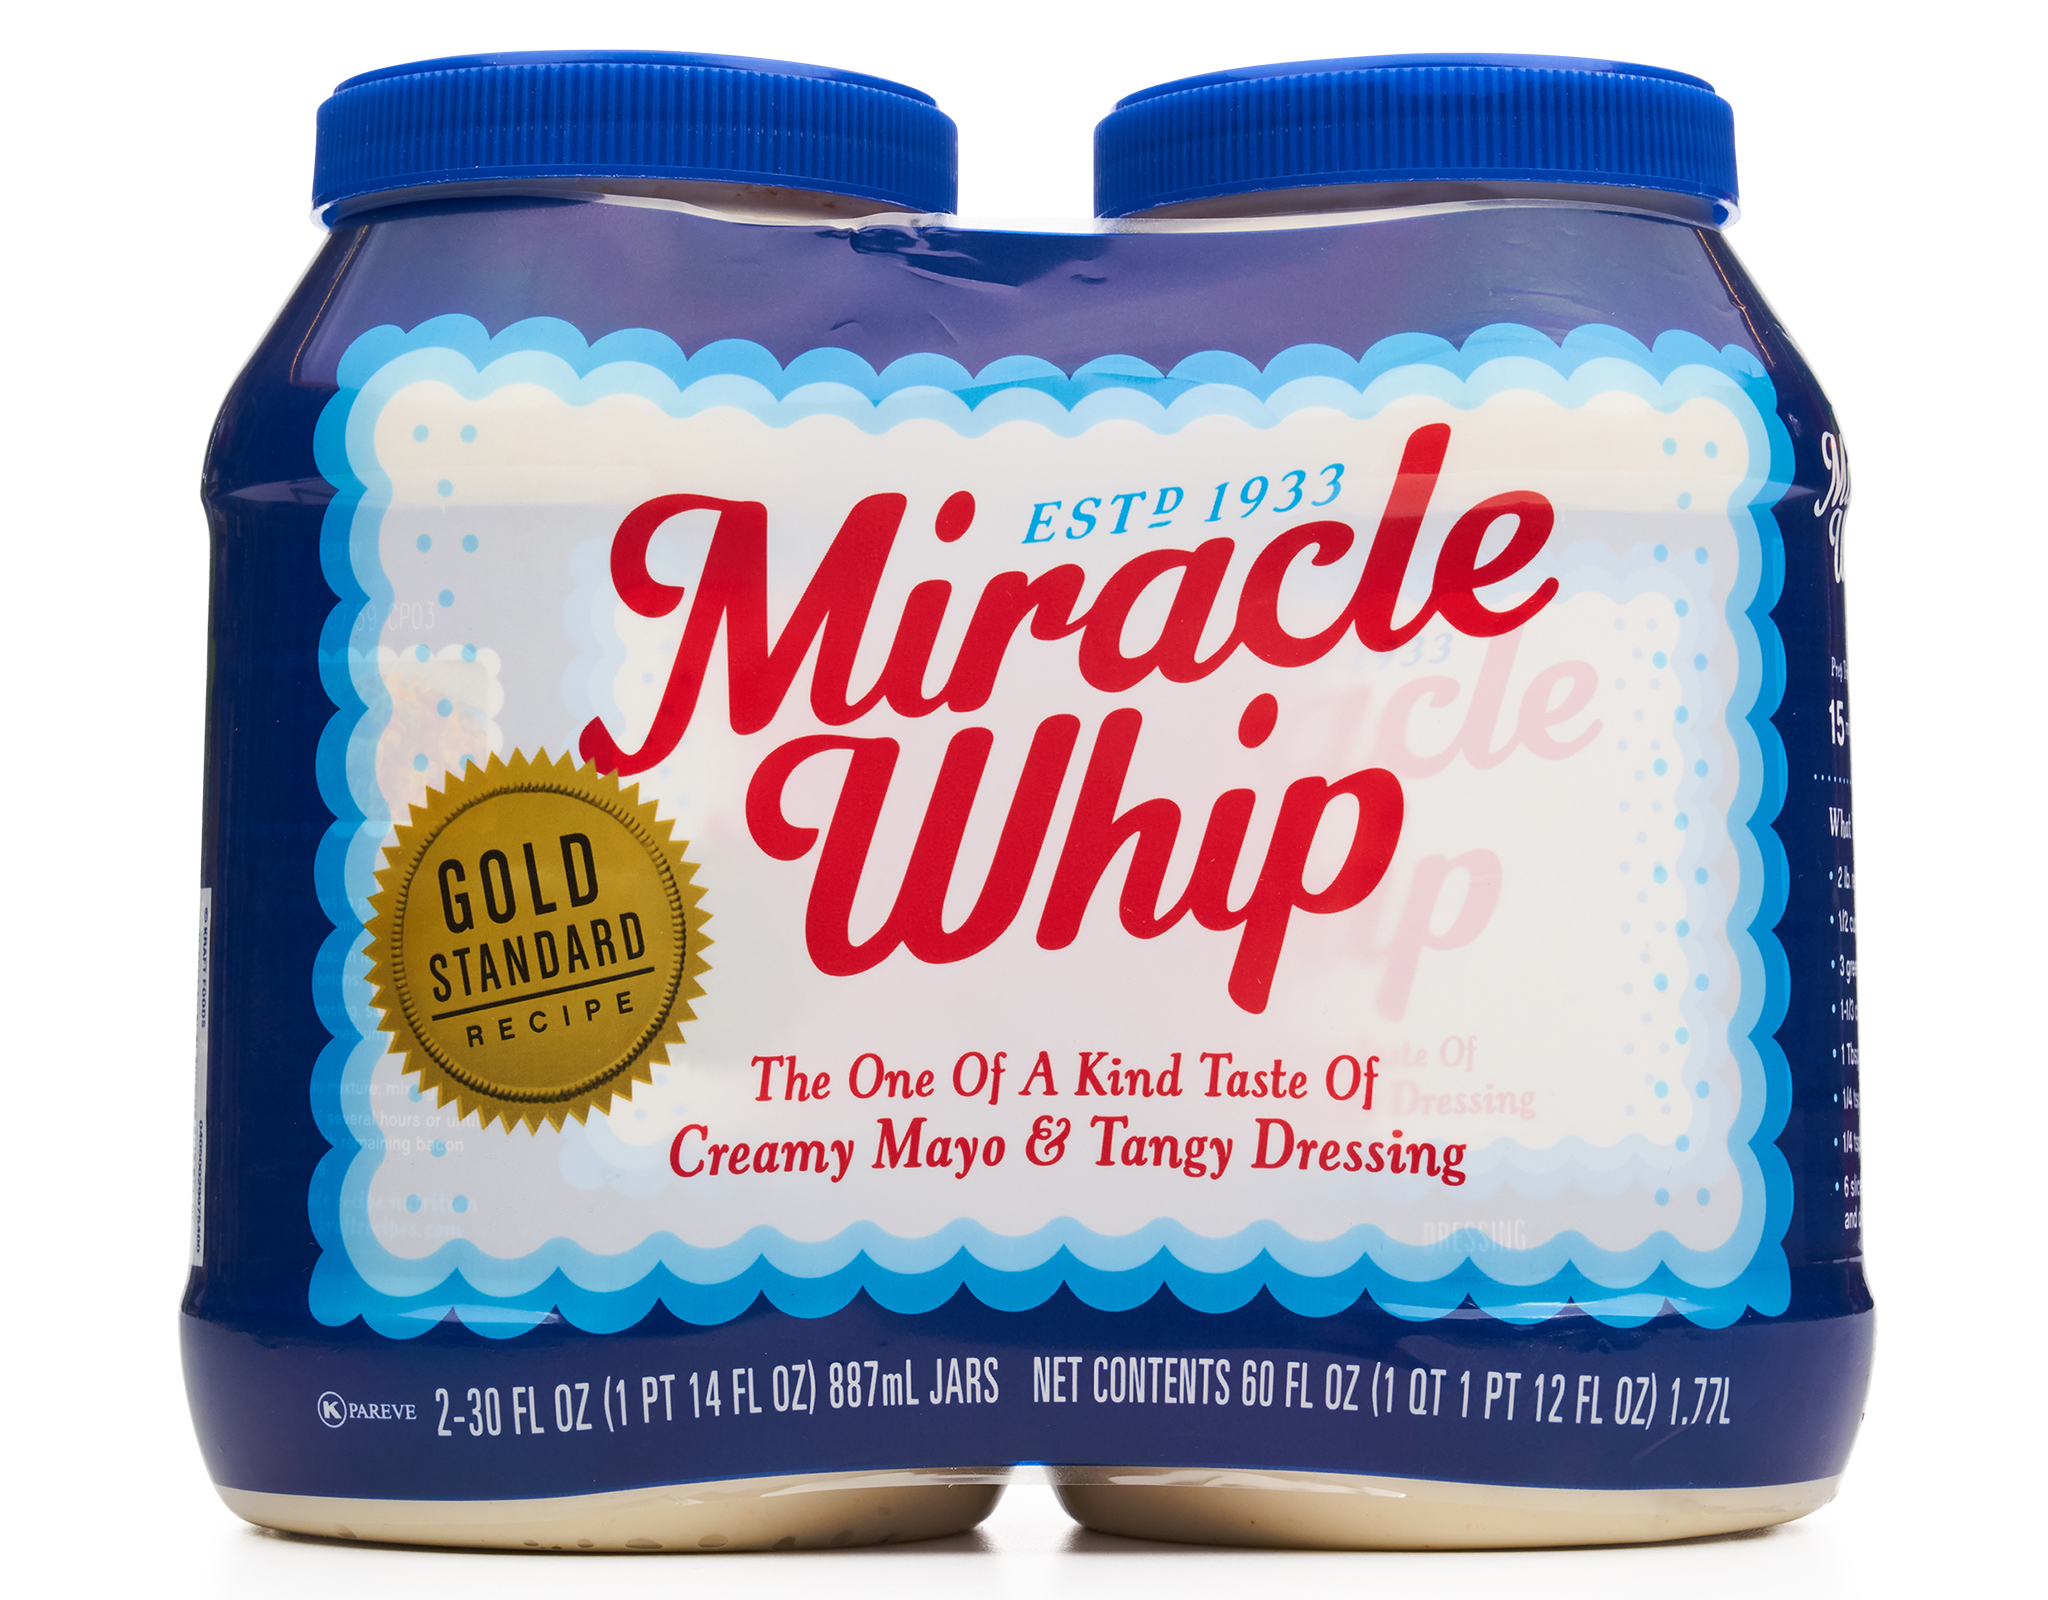 Charm Kraft Miracle Whip X Boxed Miracle Whip Vs Mayo Oatmeal Miracle Whip Vs Mayo Debate nice food Miracle Whip Vs Mayo